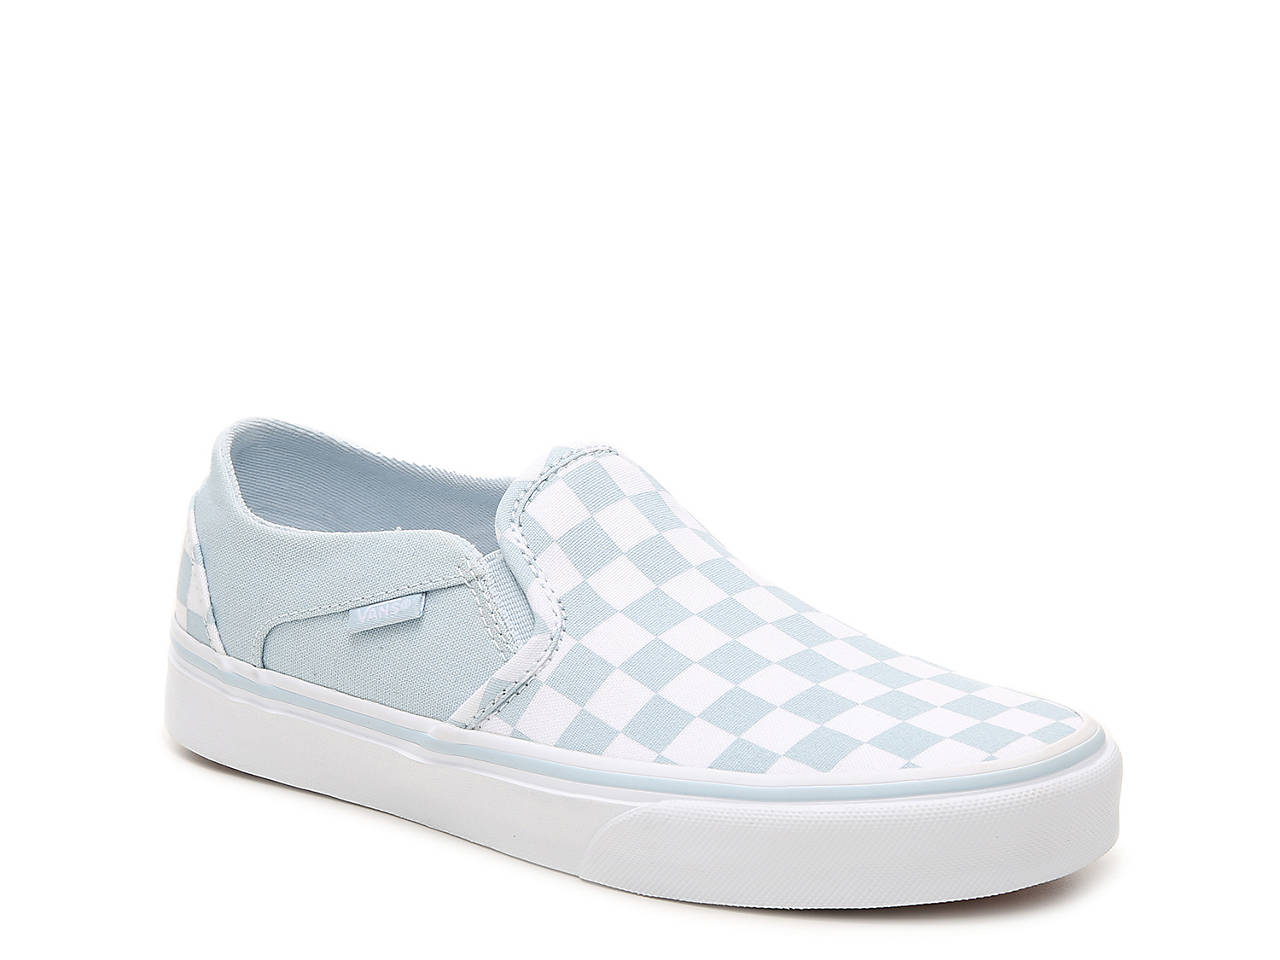 8491d756bc97d7 Vans Asher Checkered Slip-On Sneaker - Women s Women s Shoes